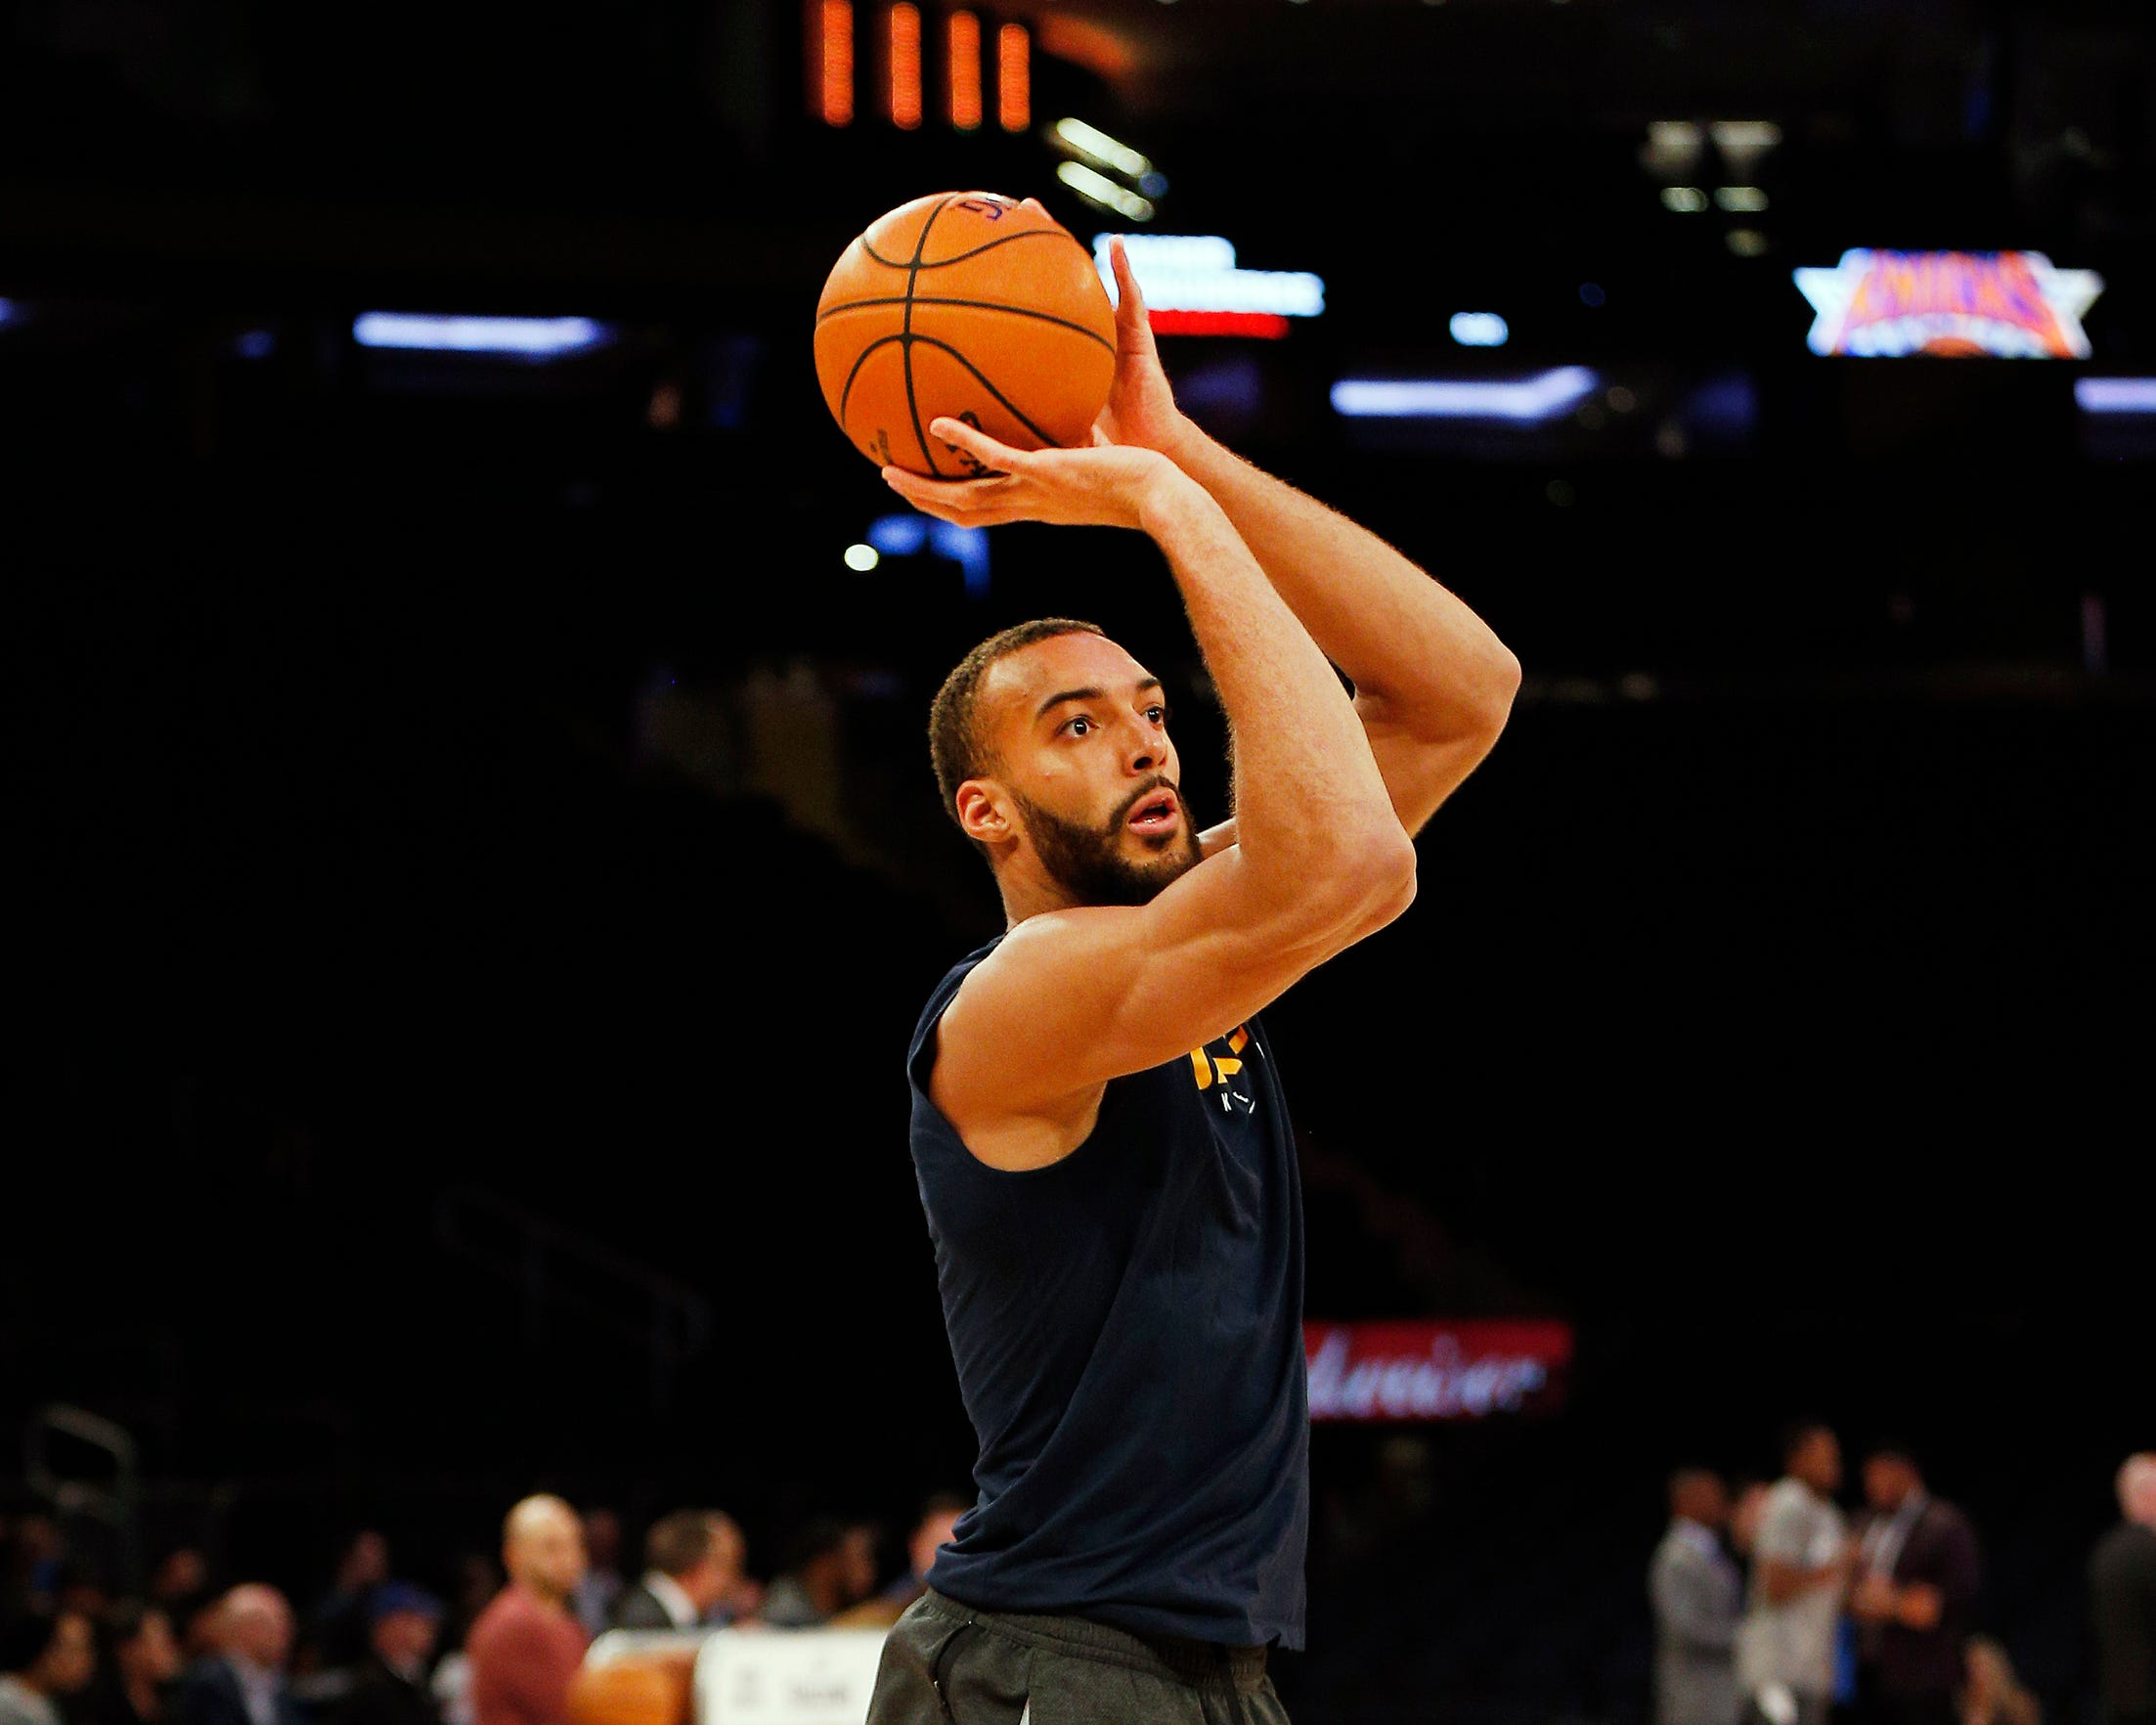 Utah Jazz center Rudy Gobert was the first Jazz player to test positive for the coronavirus. His teammates and recent opponents were also tested for the virus following his positive test.